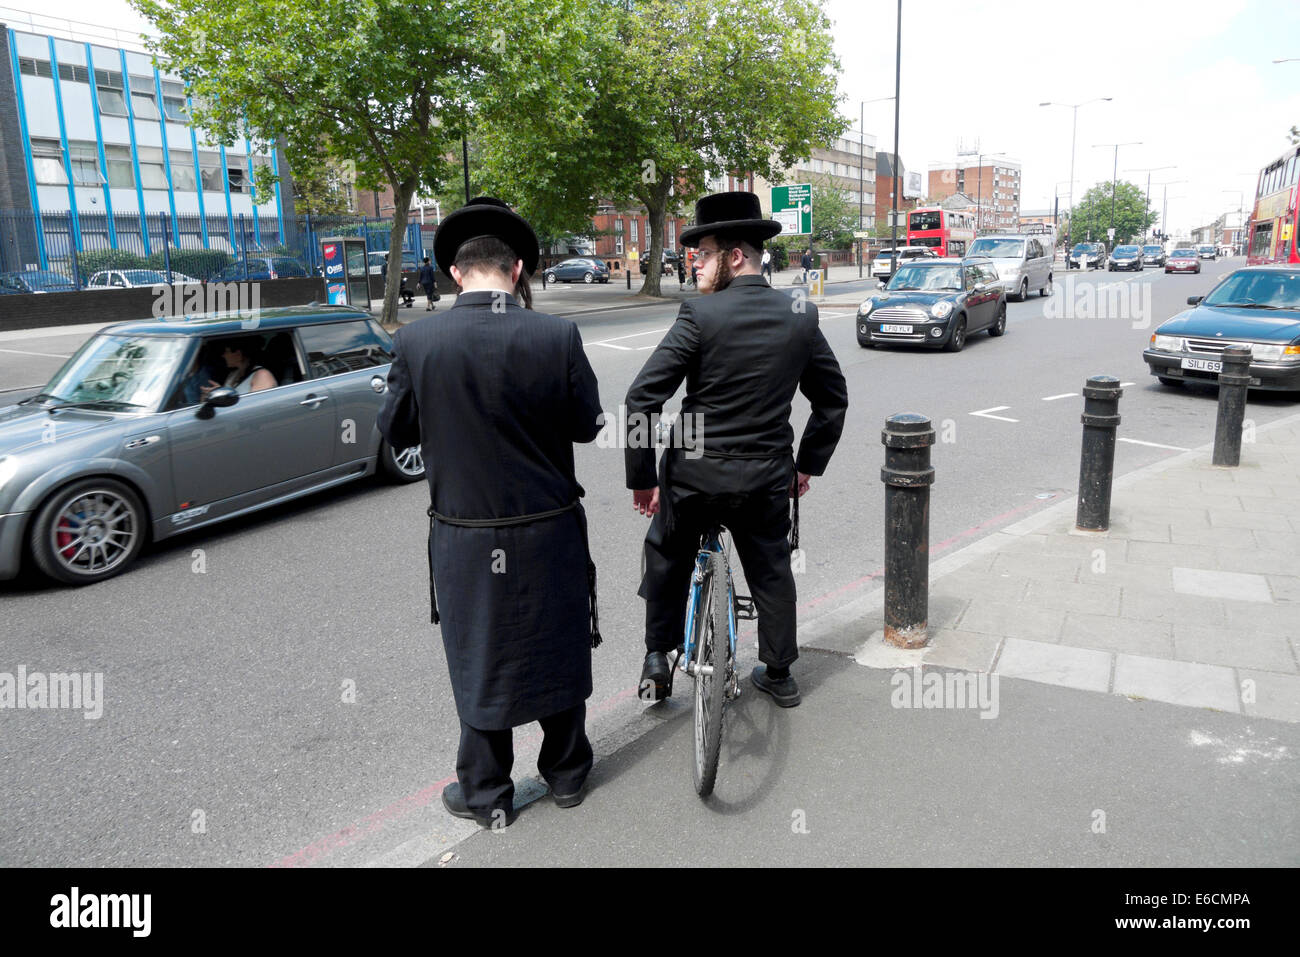 Orthodox Hasidic Jewish men with bicycle waiting to cross the road through traffic in Stamford Hill London N16  - Stock Image